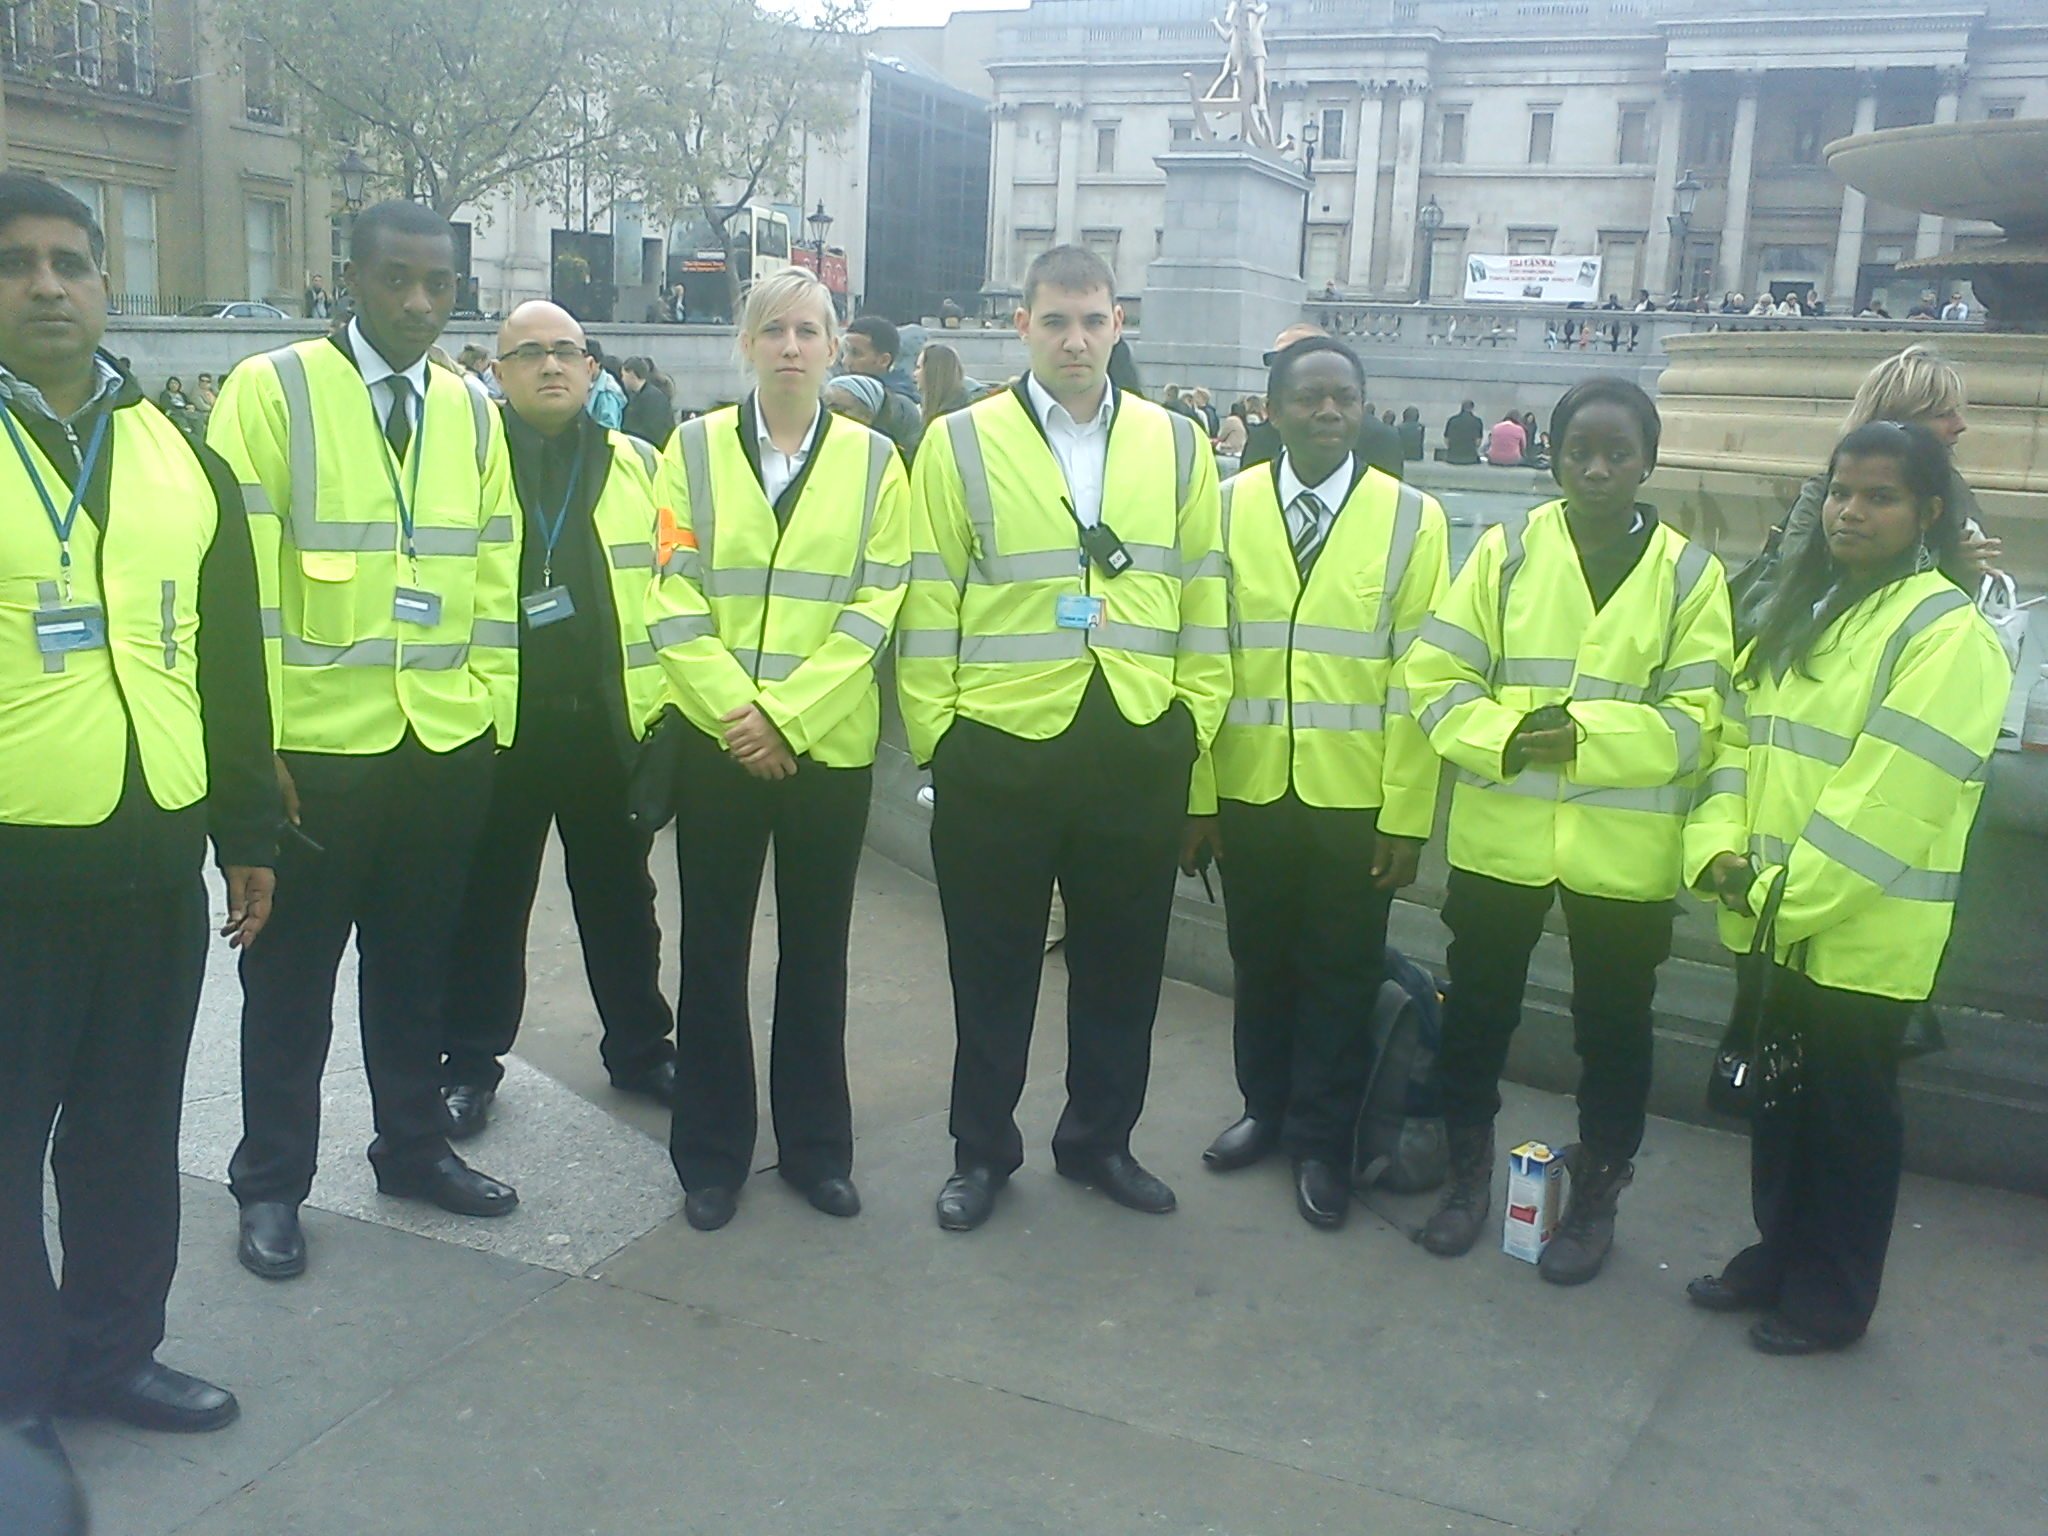 Event London Security